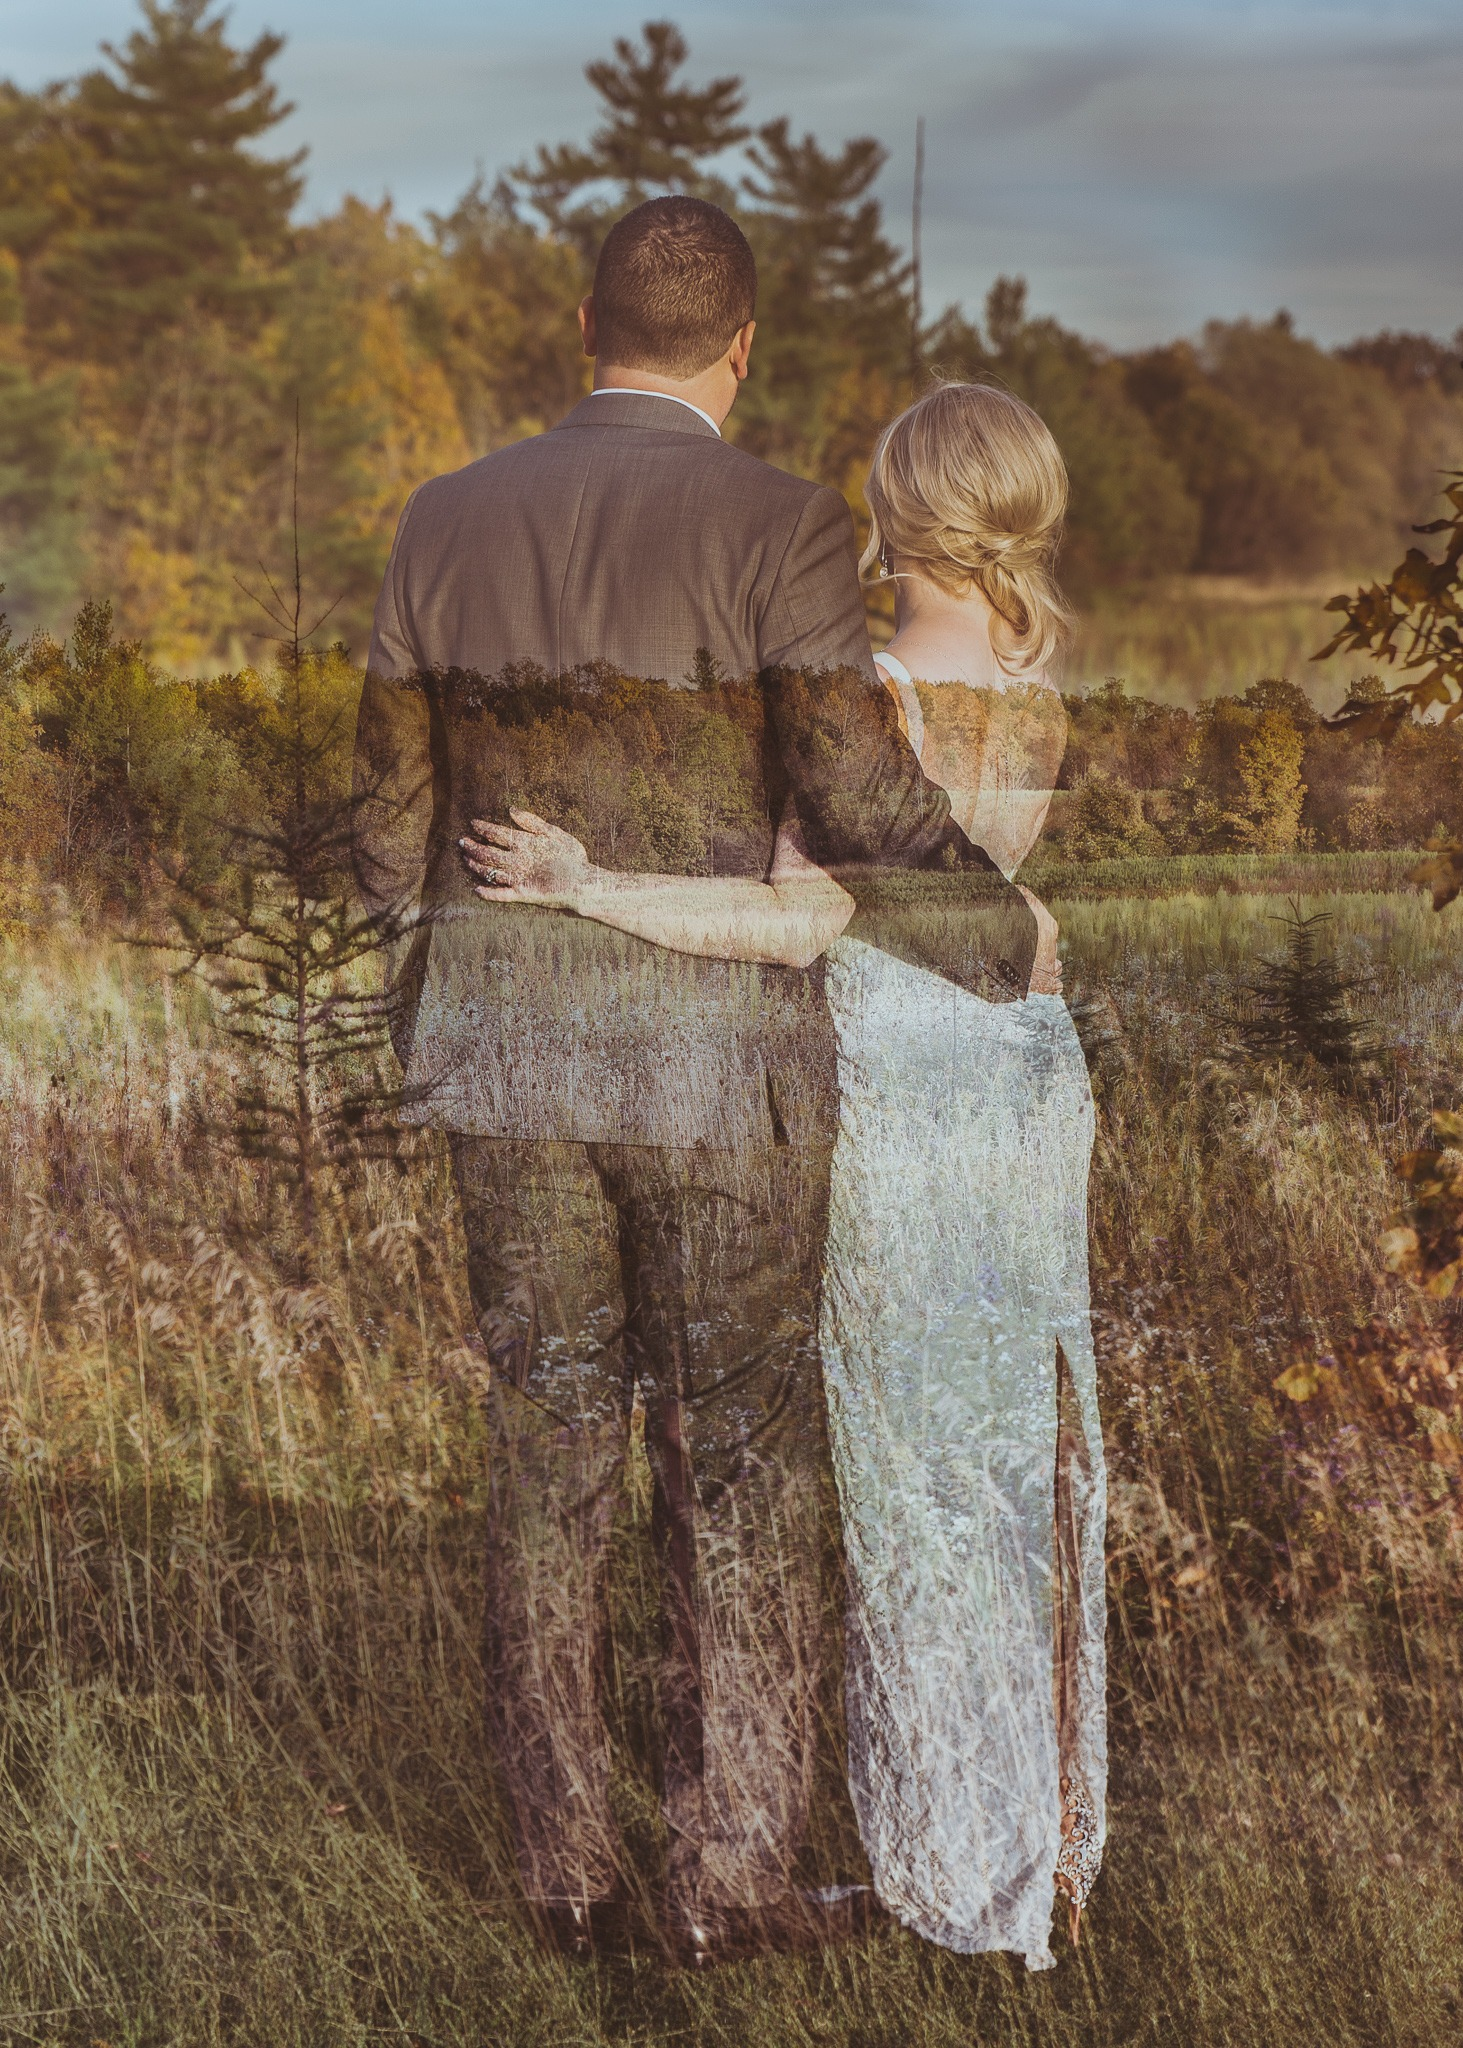 double exposure of the bride and groom hugging